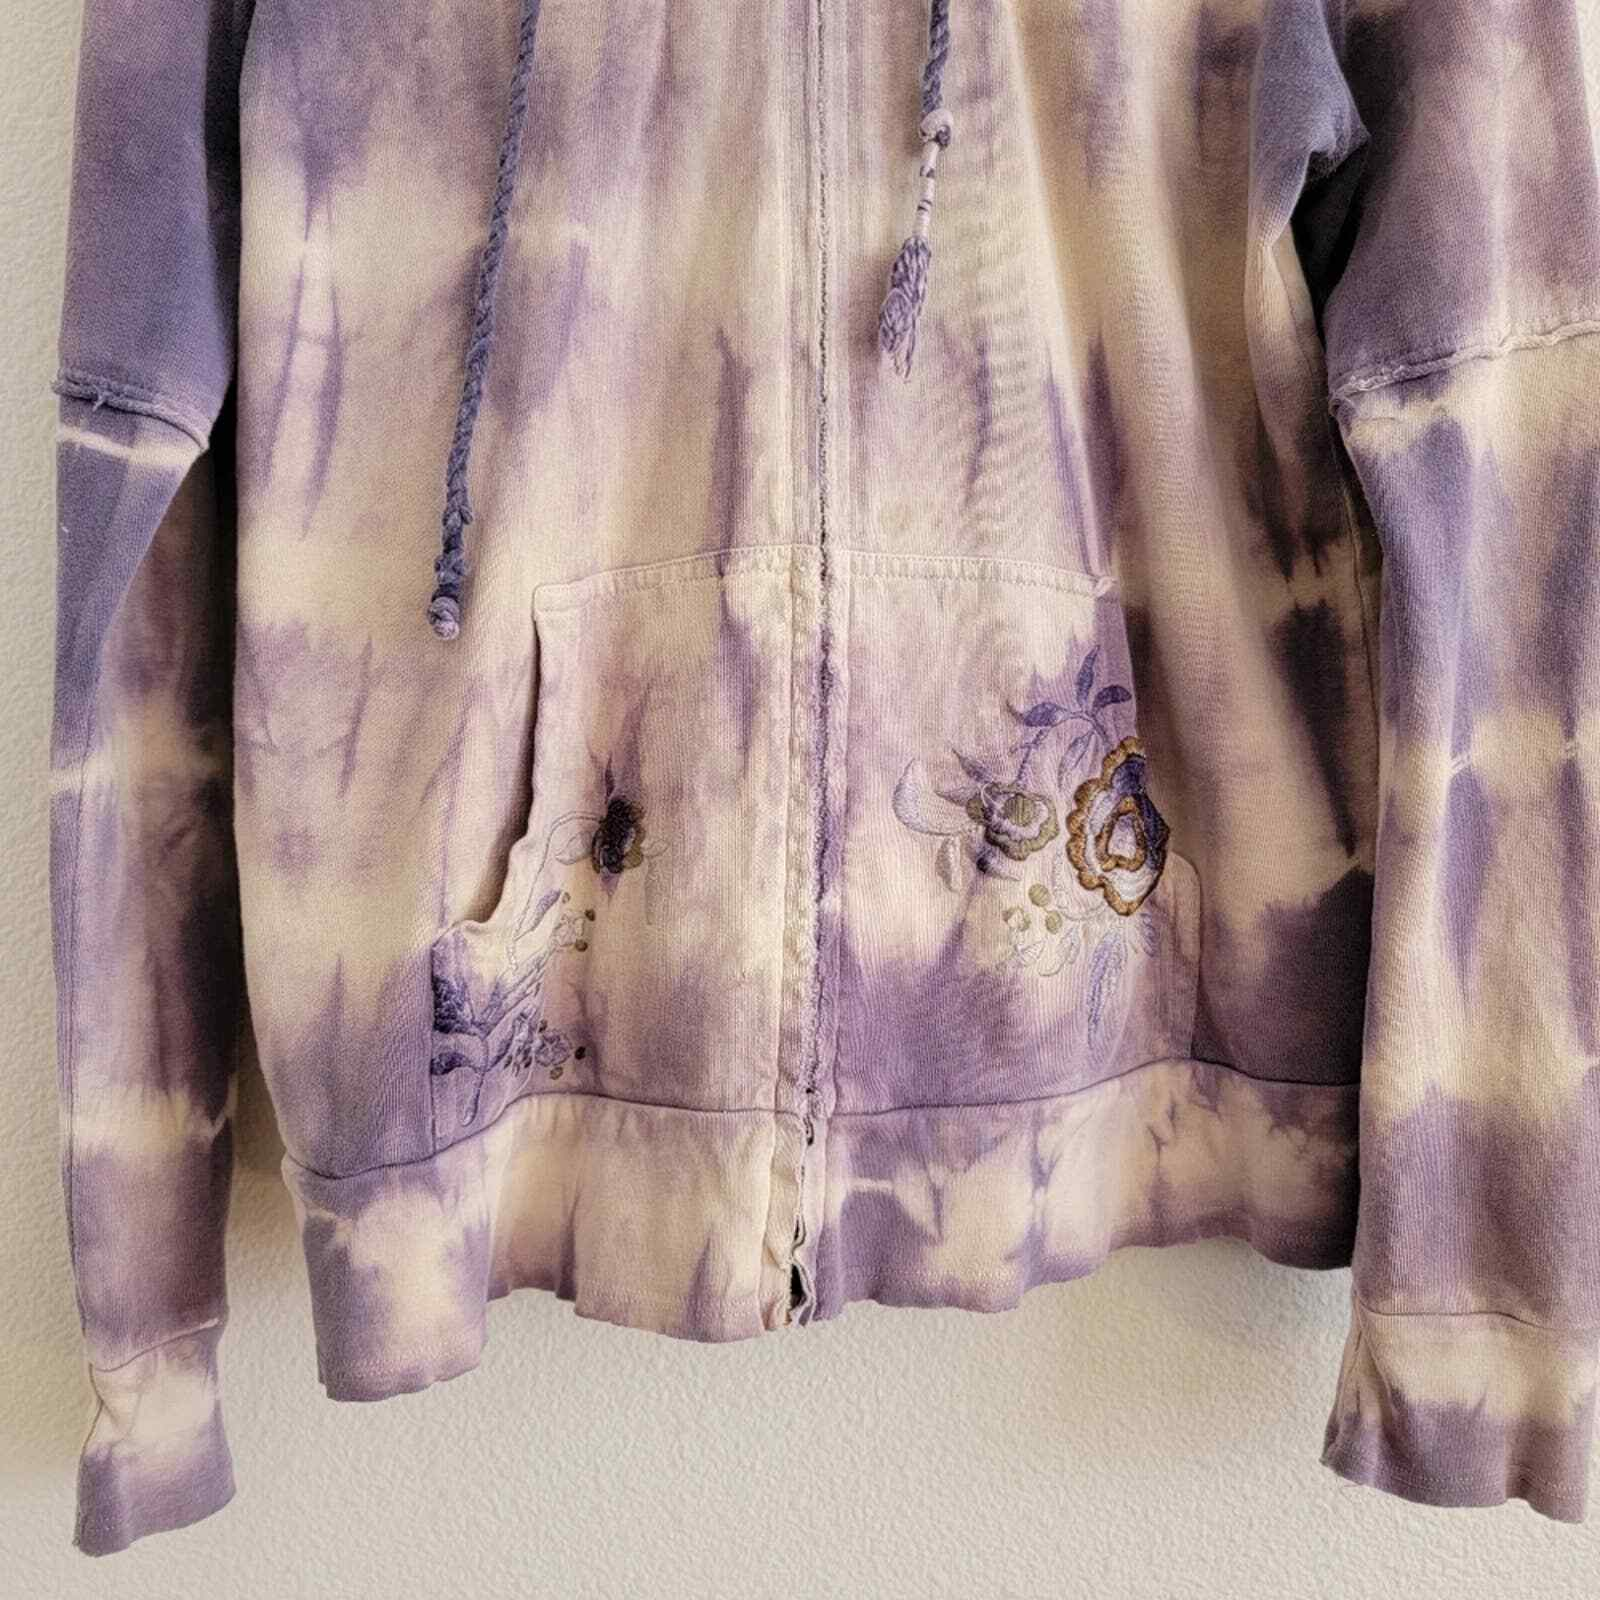 Penelope Violet Tie-Dye Embroidered Zip Up Sweater - image 3